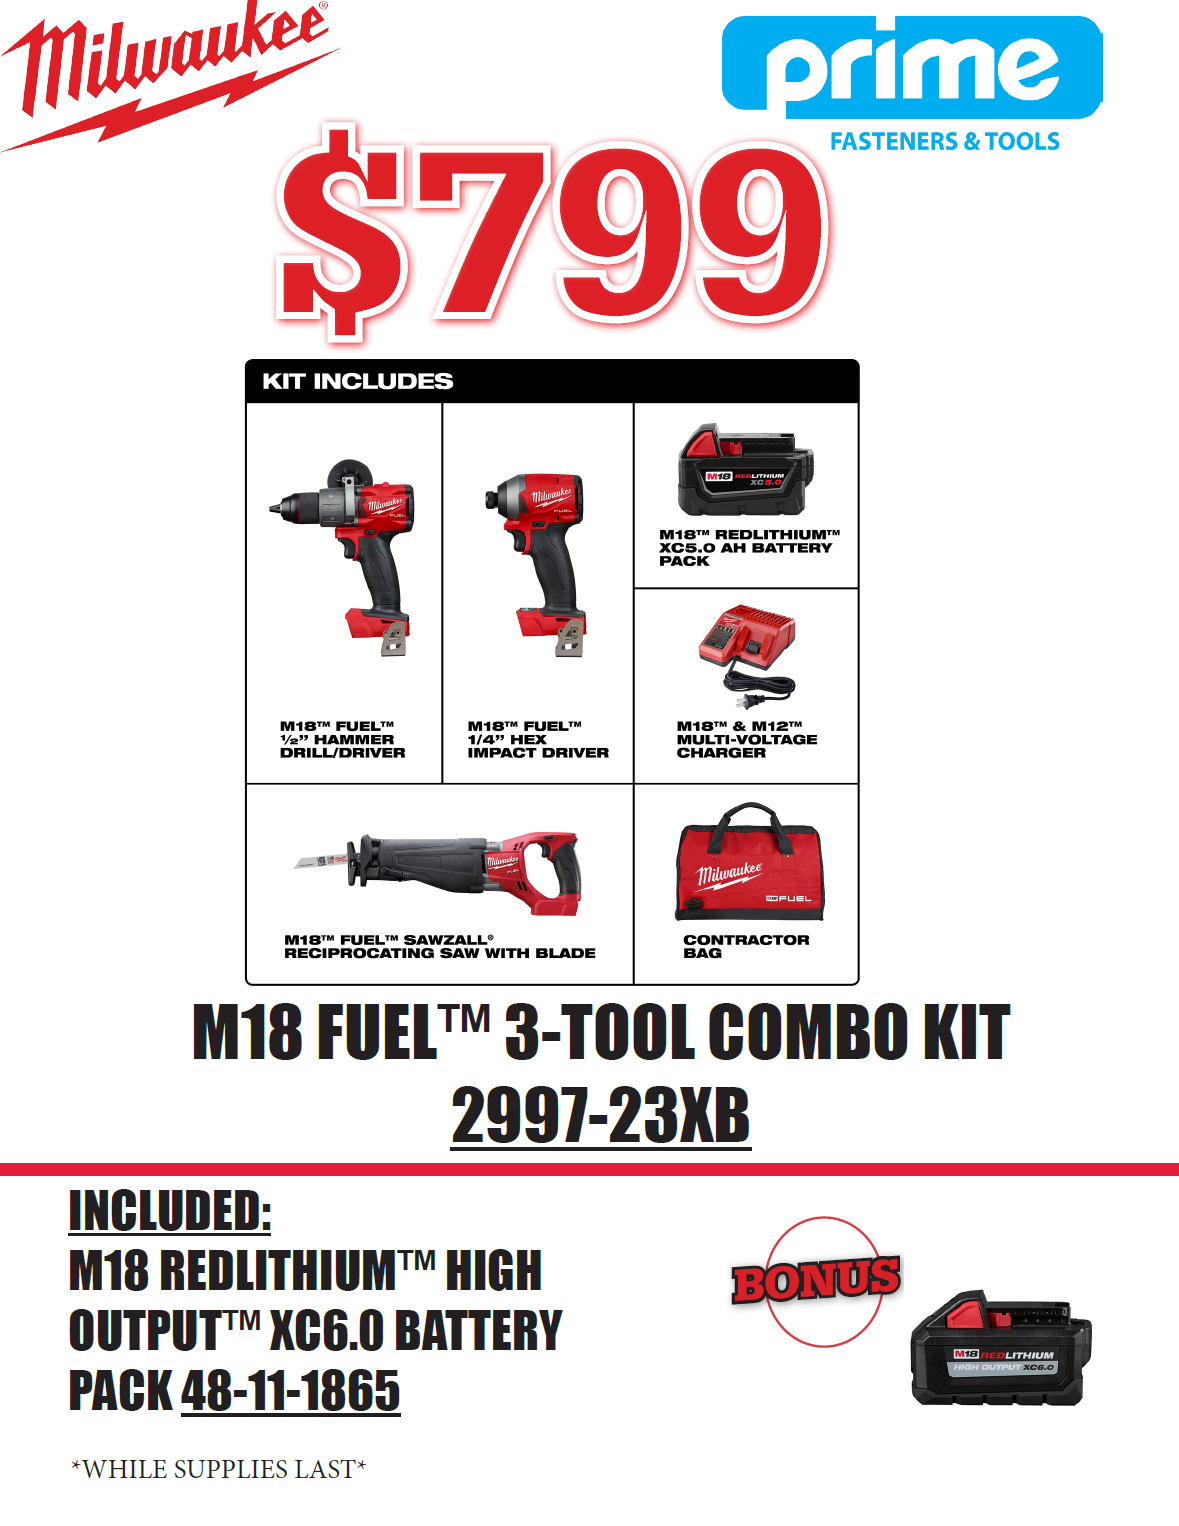 M18 FUEL™ 3 Tool Combo Kit (2997-23) + FREE BONUS M18 REDLITHIUM™ HIGH OUTPUT™ XC6.0 Battery Pack (48-11-1865)  $799